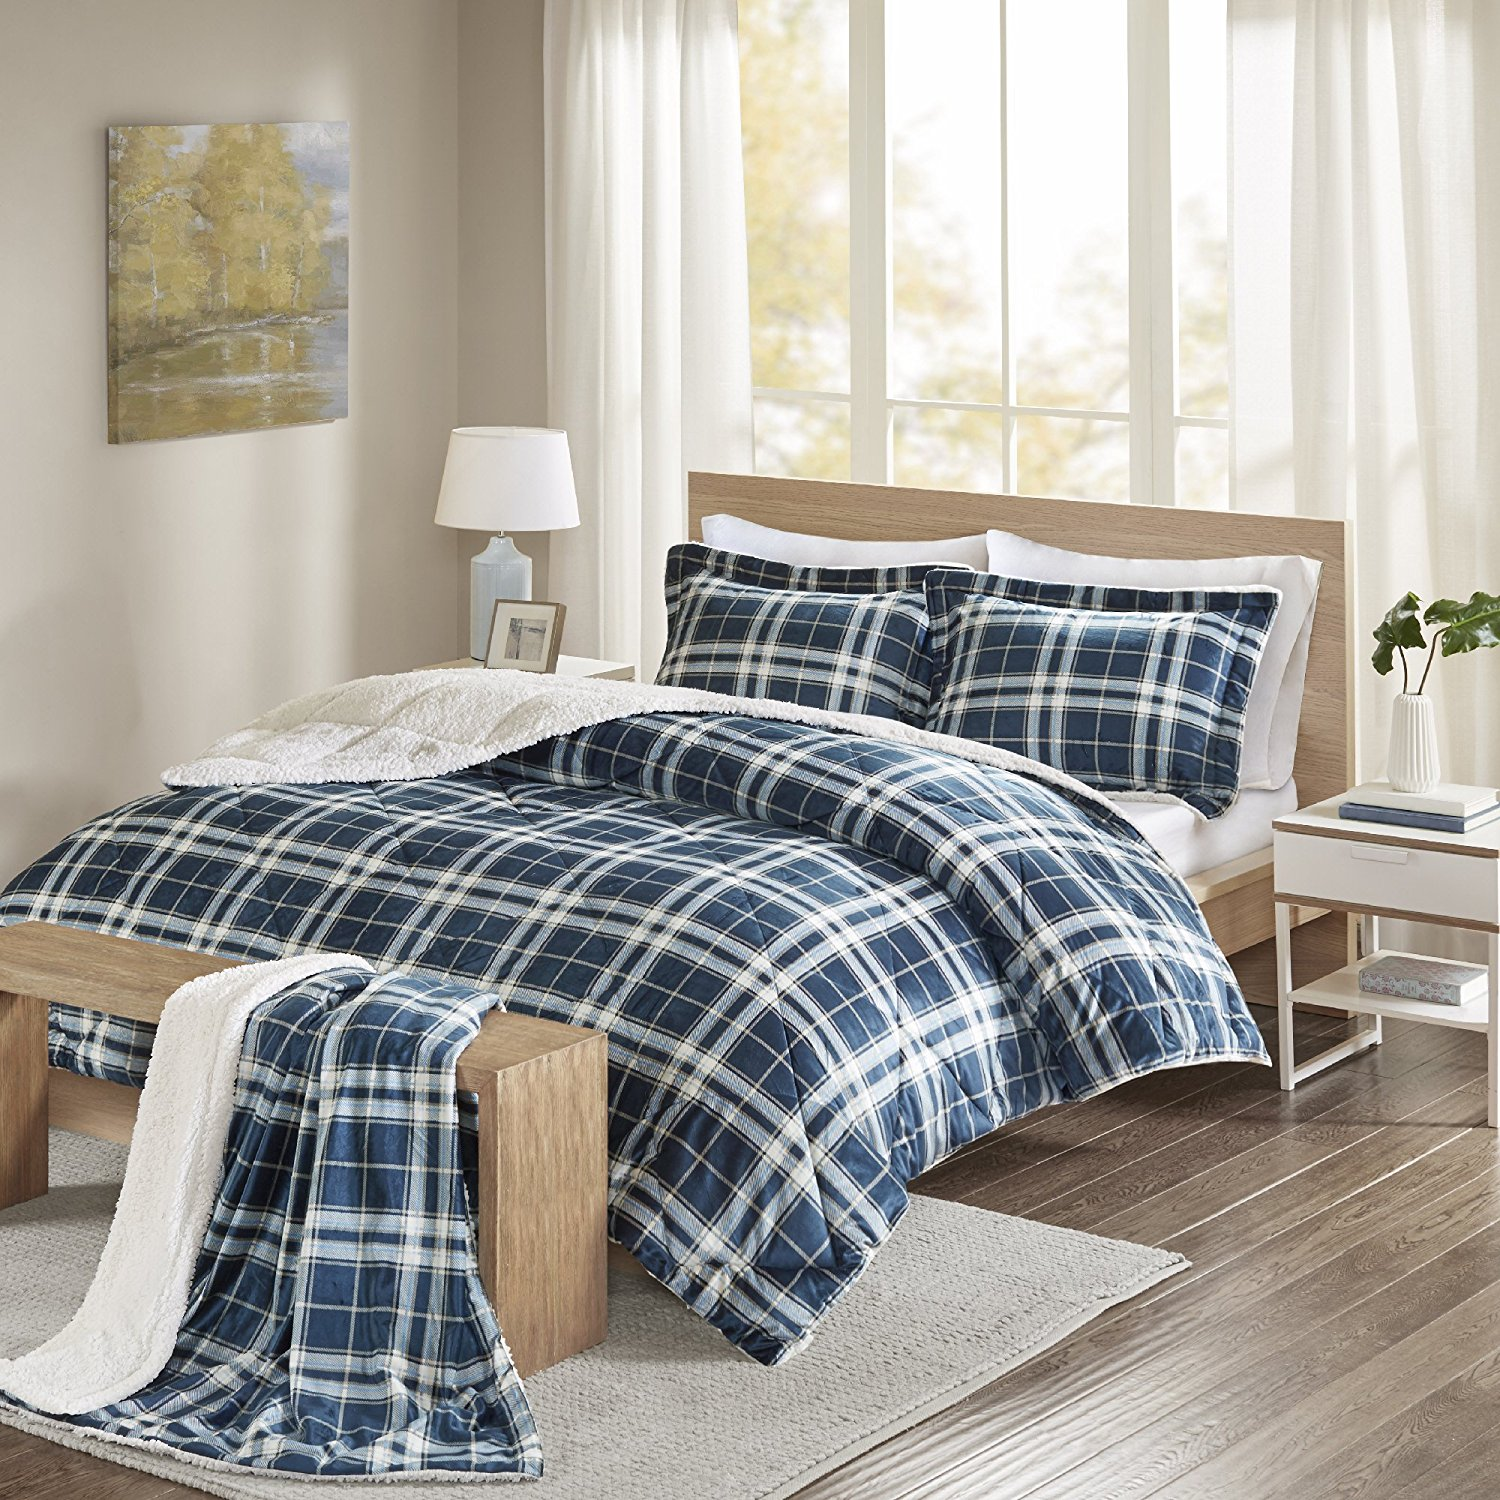 Comfort Spaces - Aaron Sherpa Comforter Set + Throw Combo - 4 Piece - Checker Plaid Pattern - Navy, Blue - King Size - Ultra Softy, Fluffy, Warm - includes 1 Comforter, 2 Shams, 1 Throw